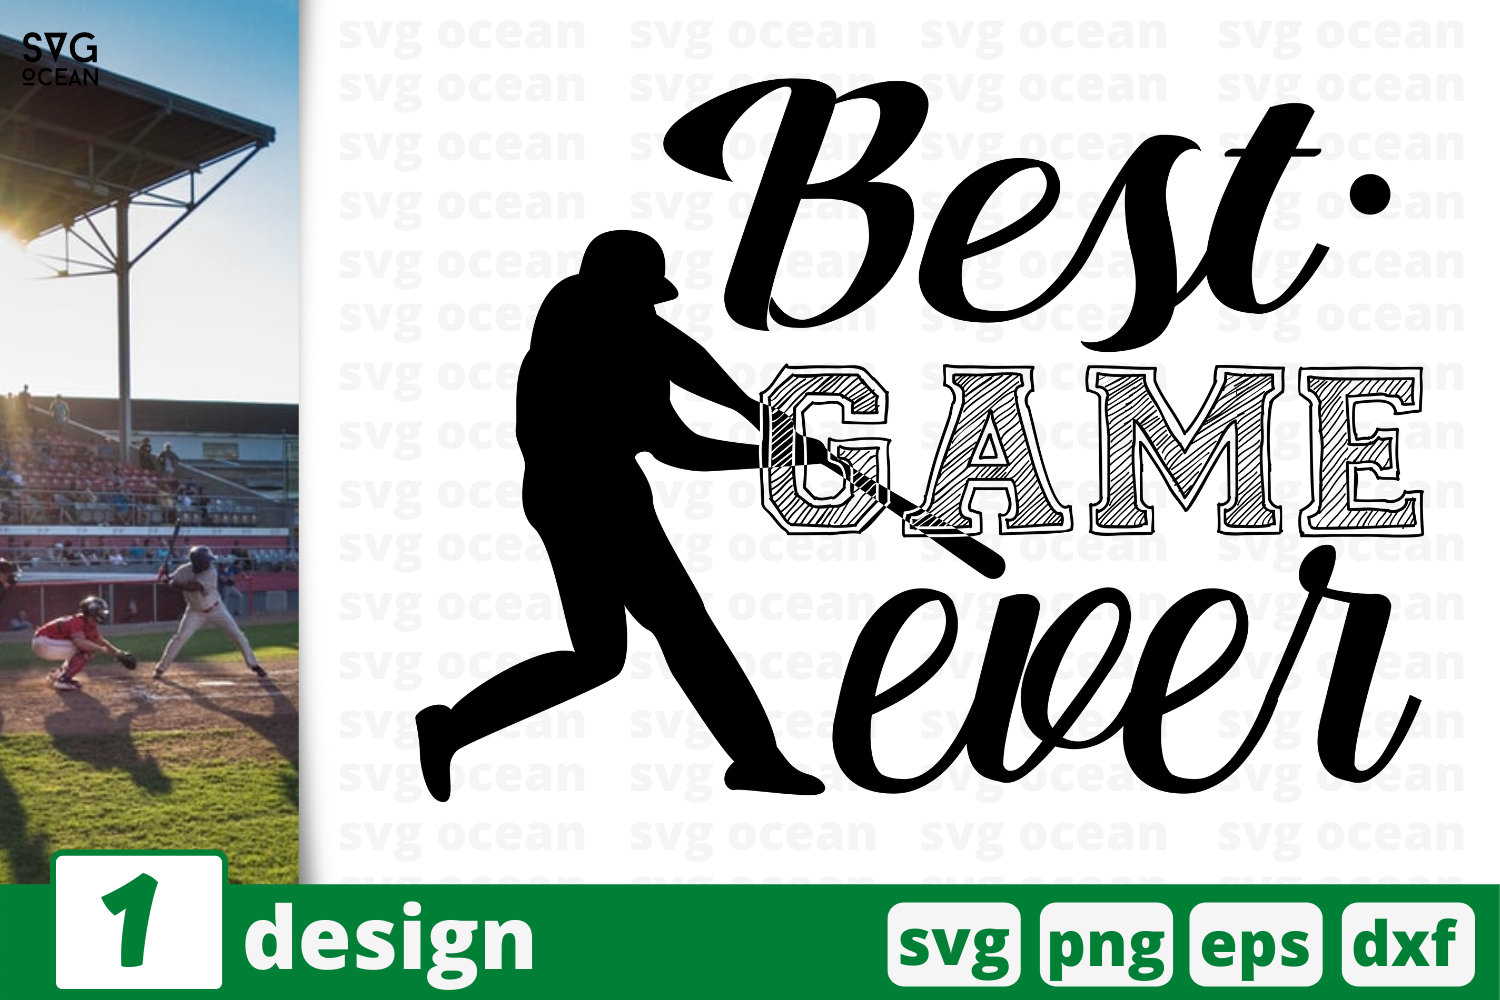 Download Free Best Game Ever Graphic By Svgocean Creative Fabrica for Cricut Explore, Silhouette and other cutting machines.